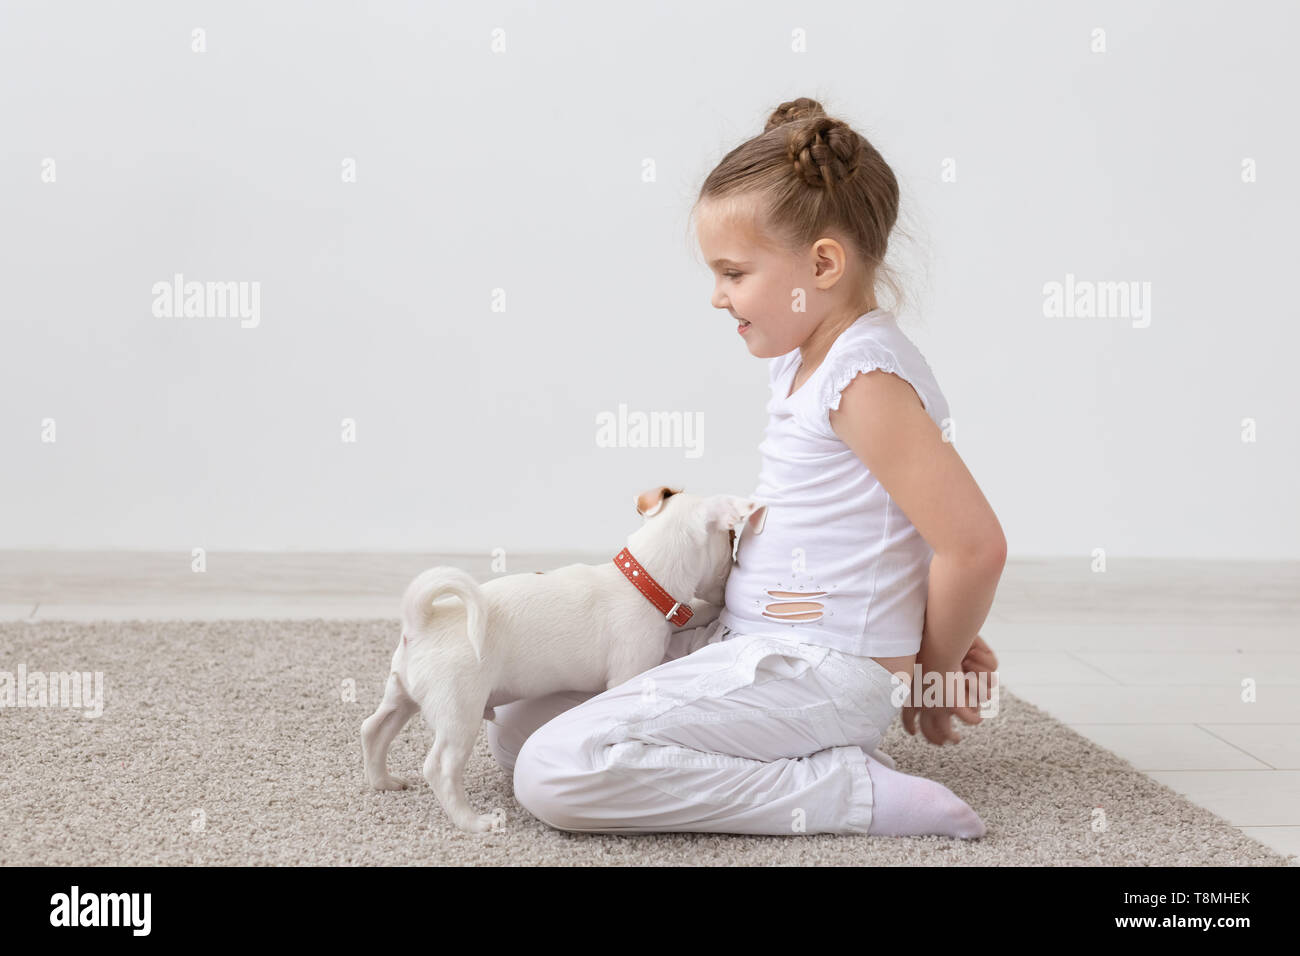 Pet, children and animal concept - child girl sitting on the floor and feeding puppy - Stock Image